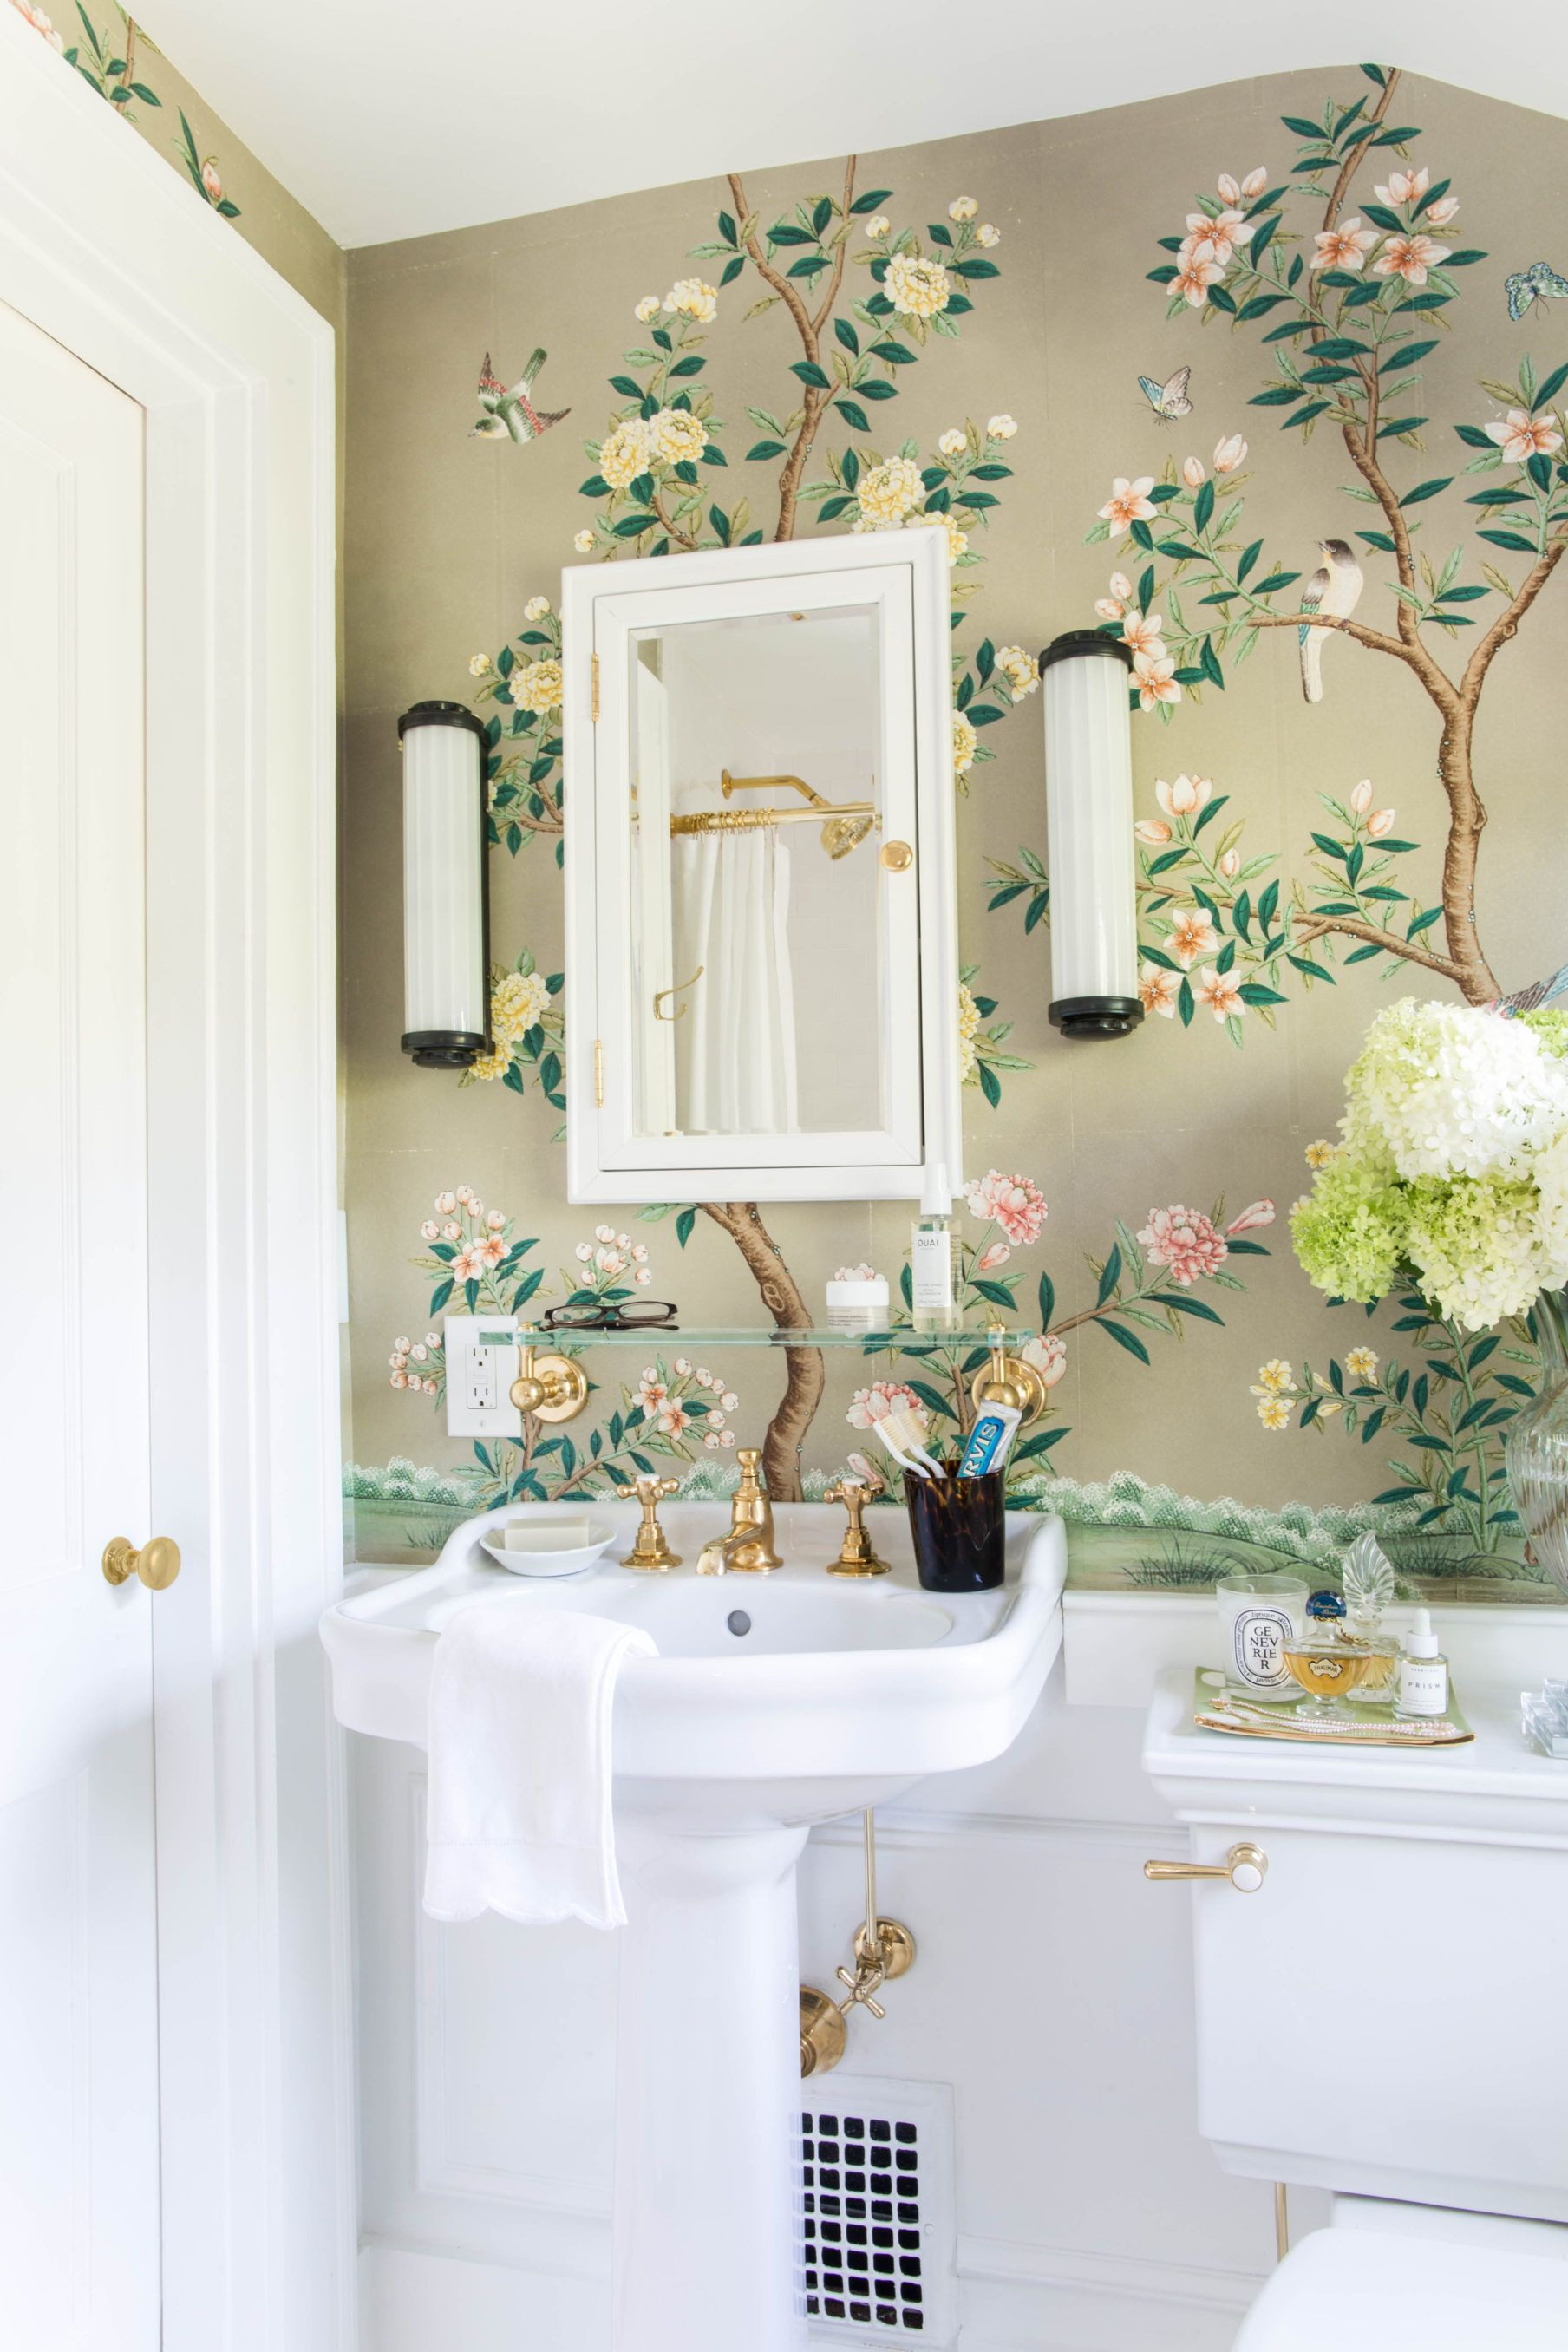 Our Guest Bathroom Reveal in 2020 Powder room wallpaper